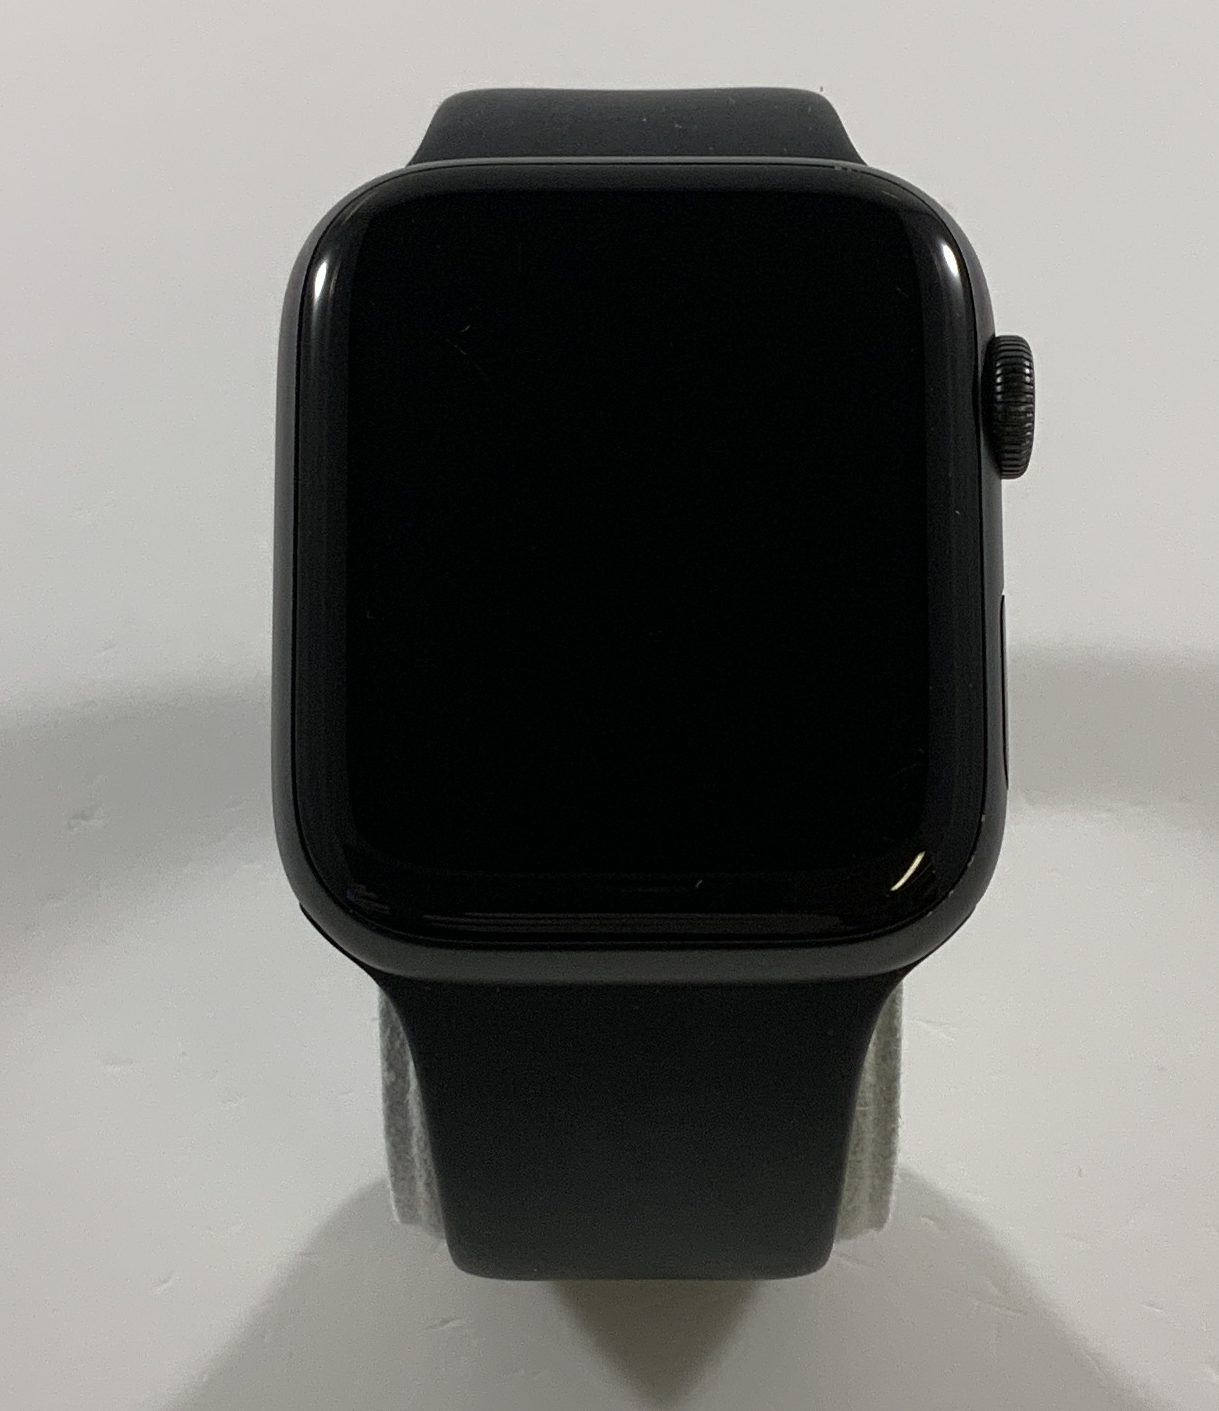 Watch Series 4 Aluminum (44mm), Space Gray, Black Sport Band, Afbeelding 1